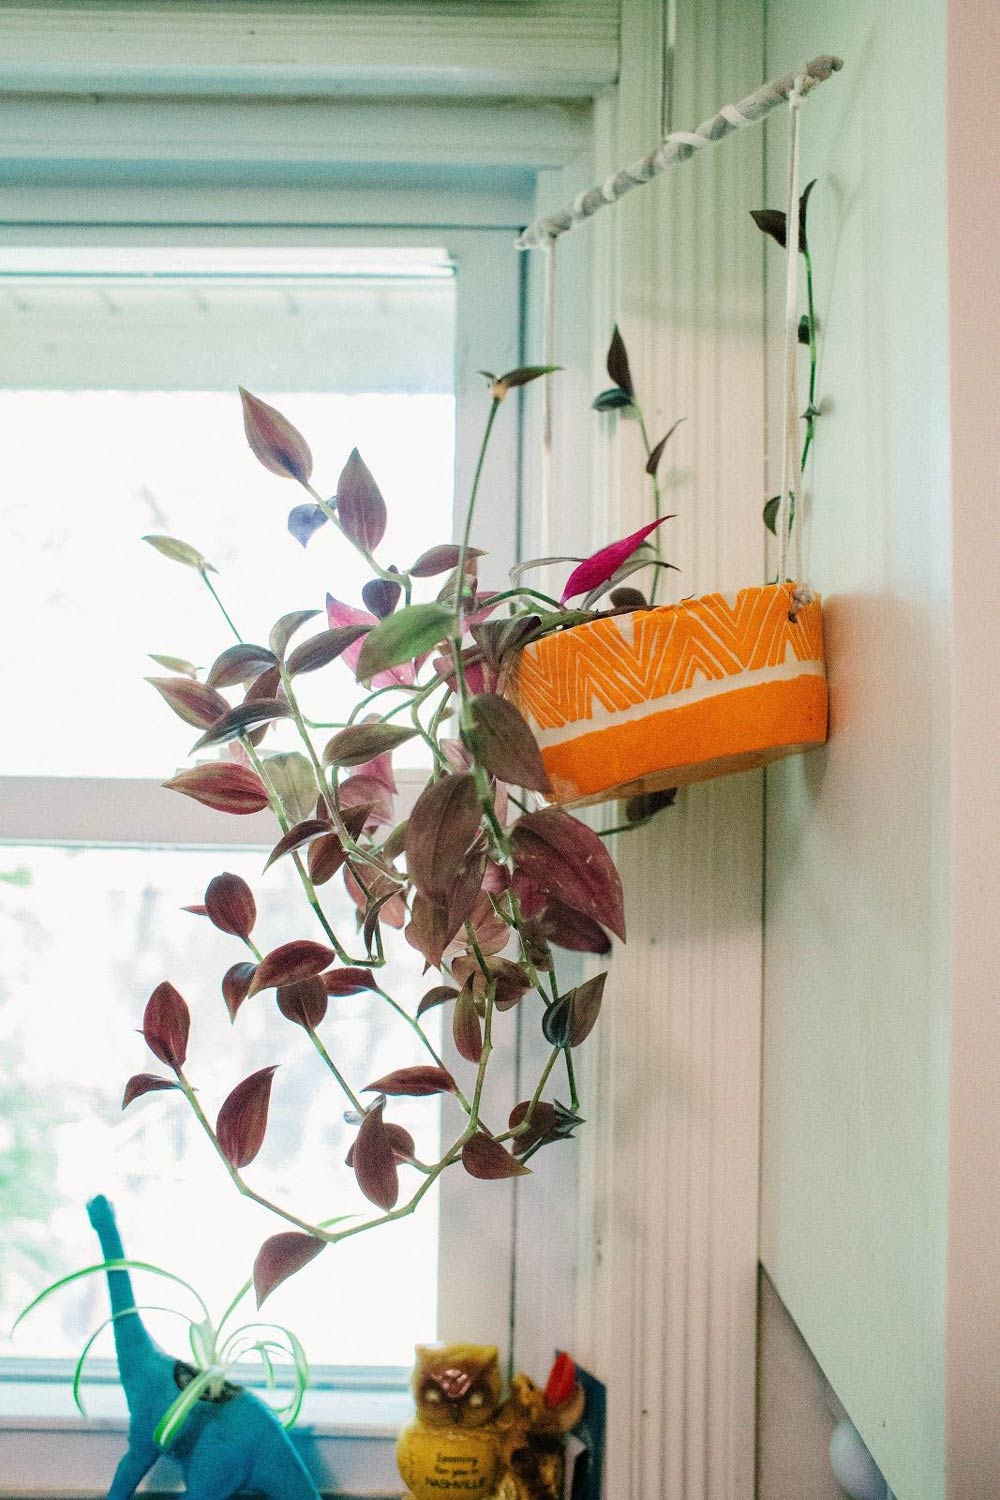 Hanging pot with plant